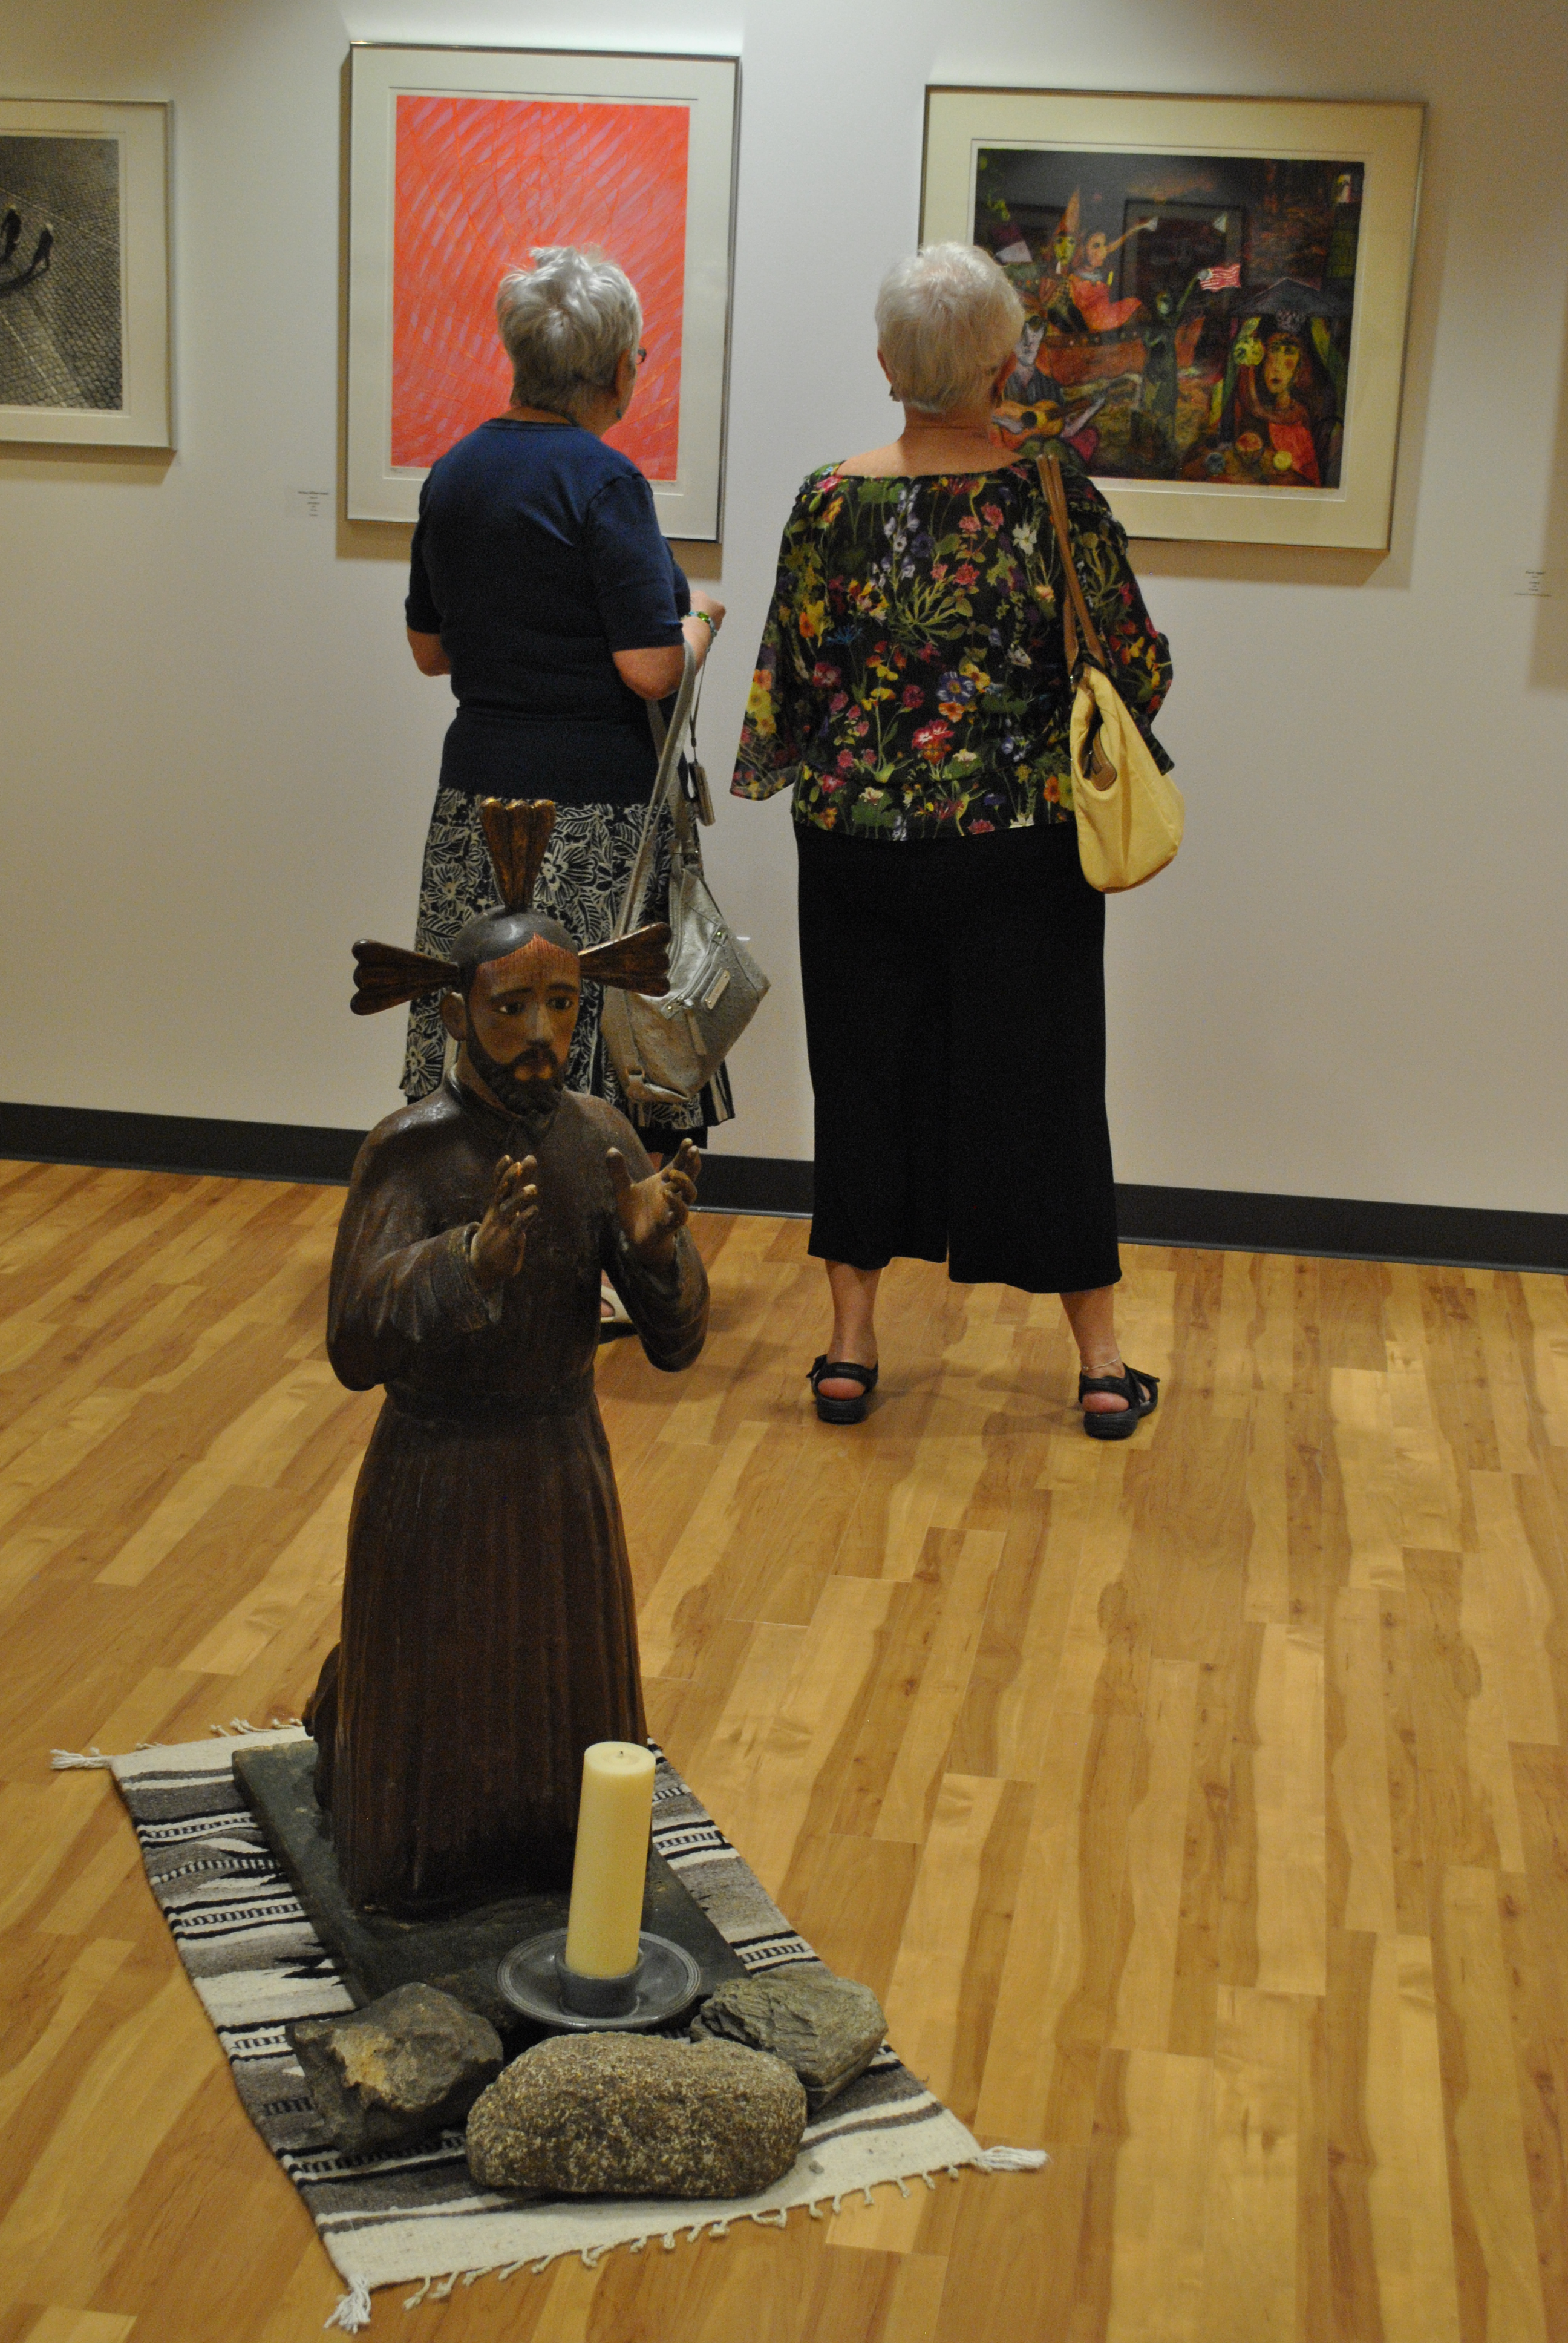 Art gallery GO 8-18-2013 090